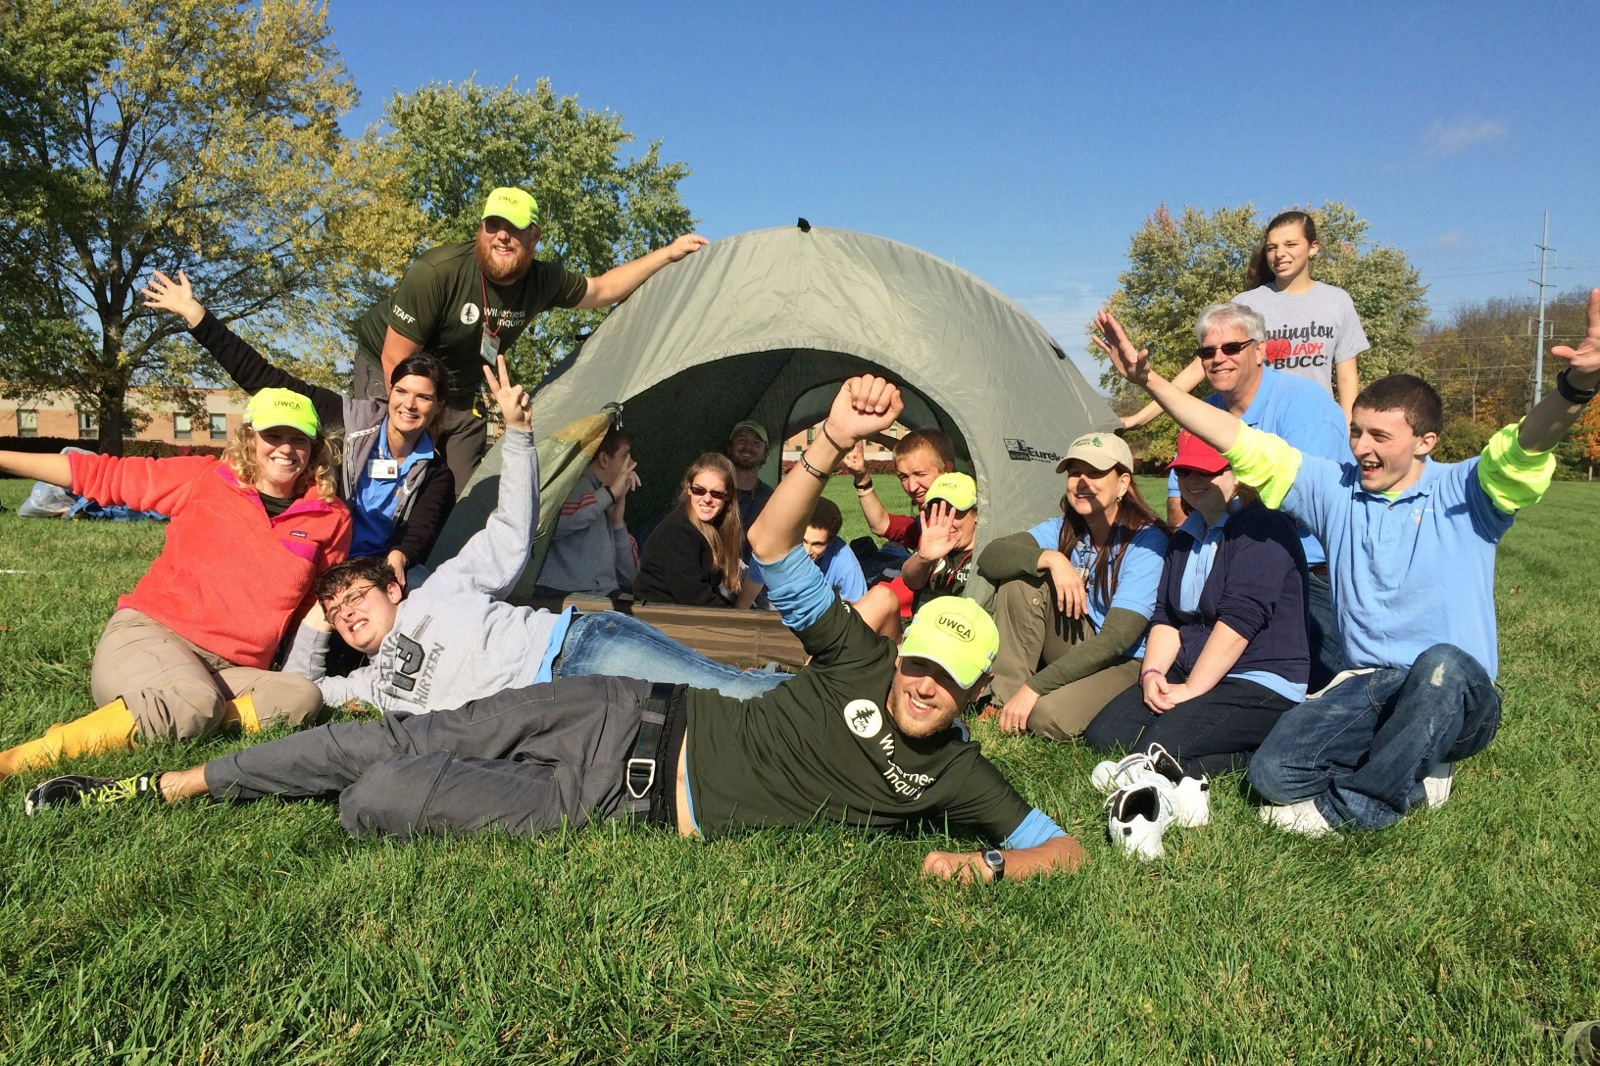 a group photo of people in and outside of a tent in a field